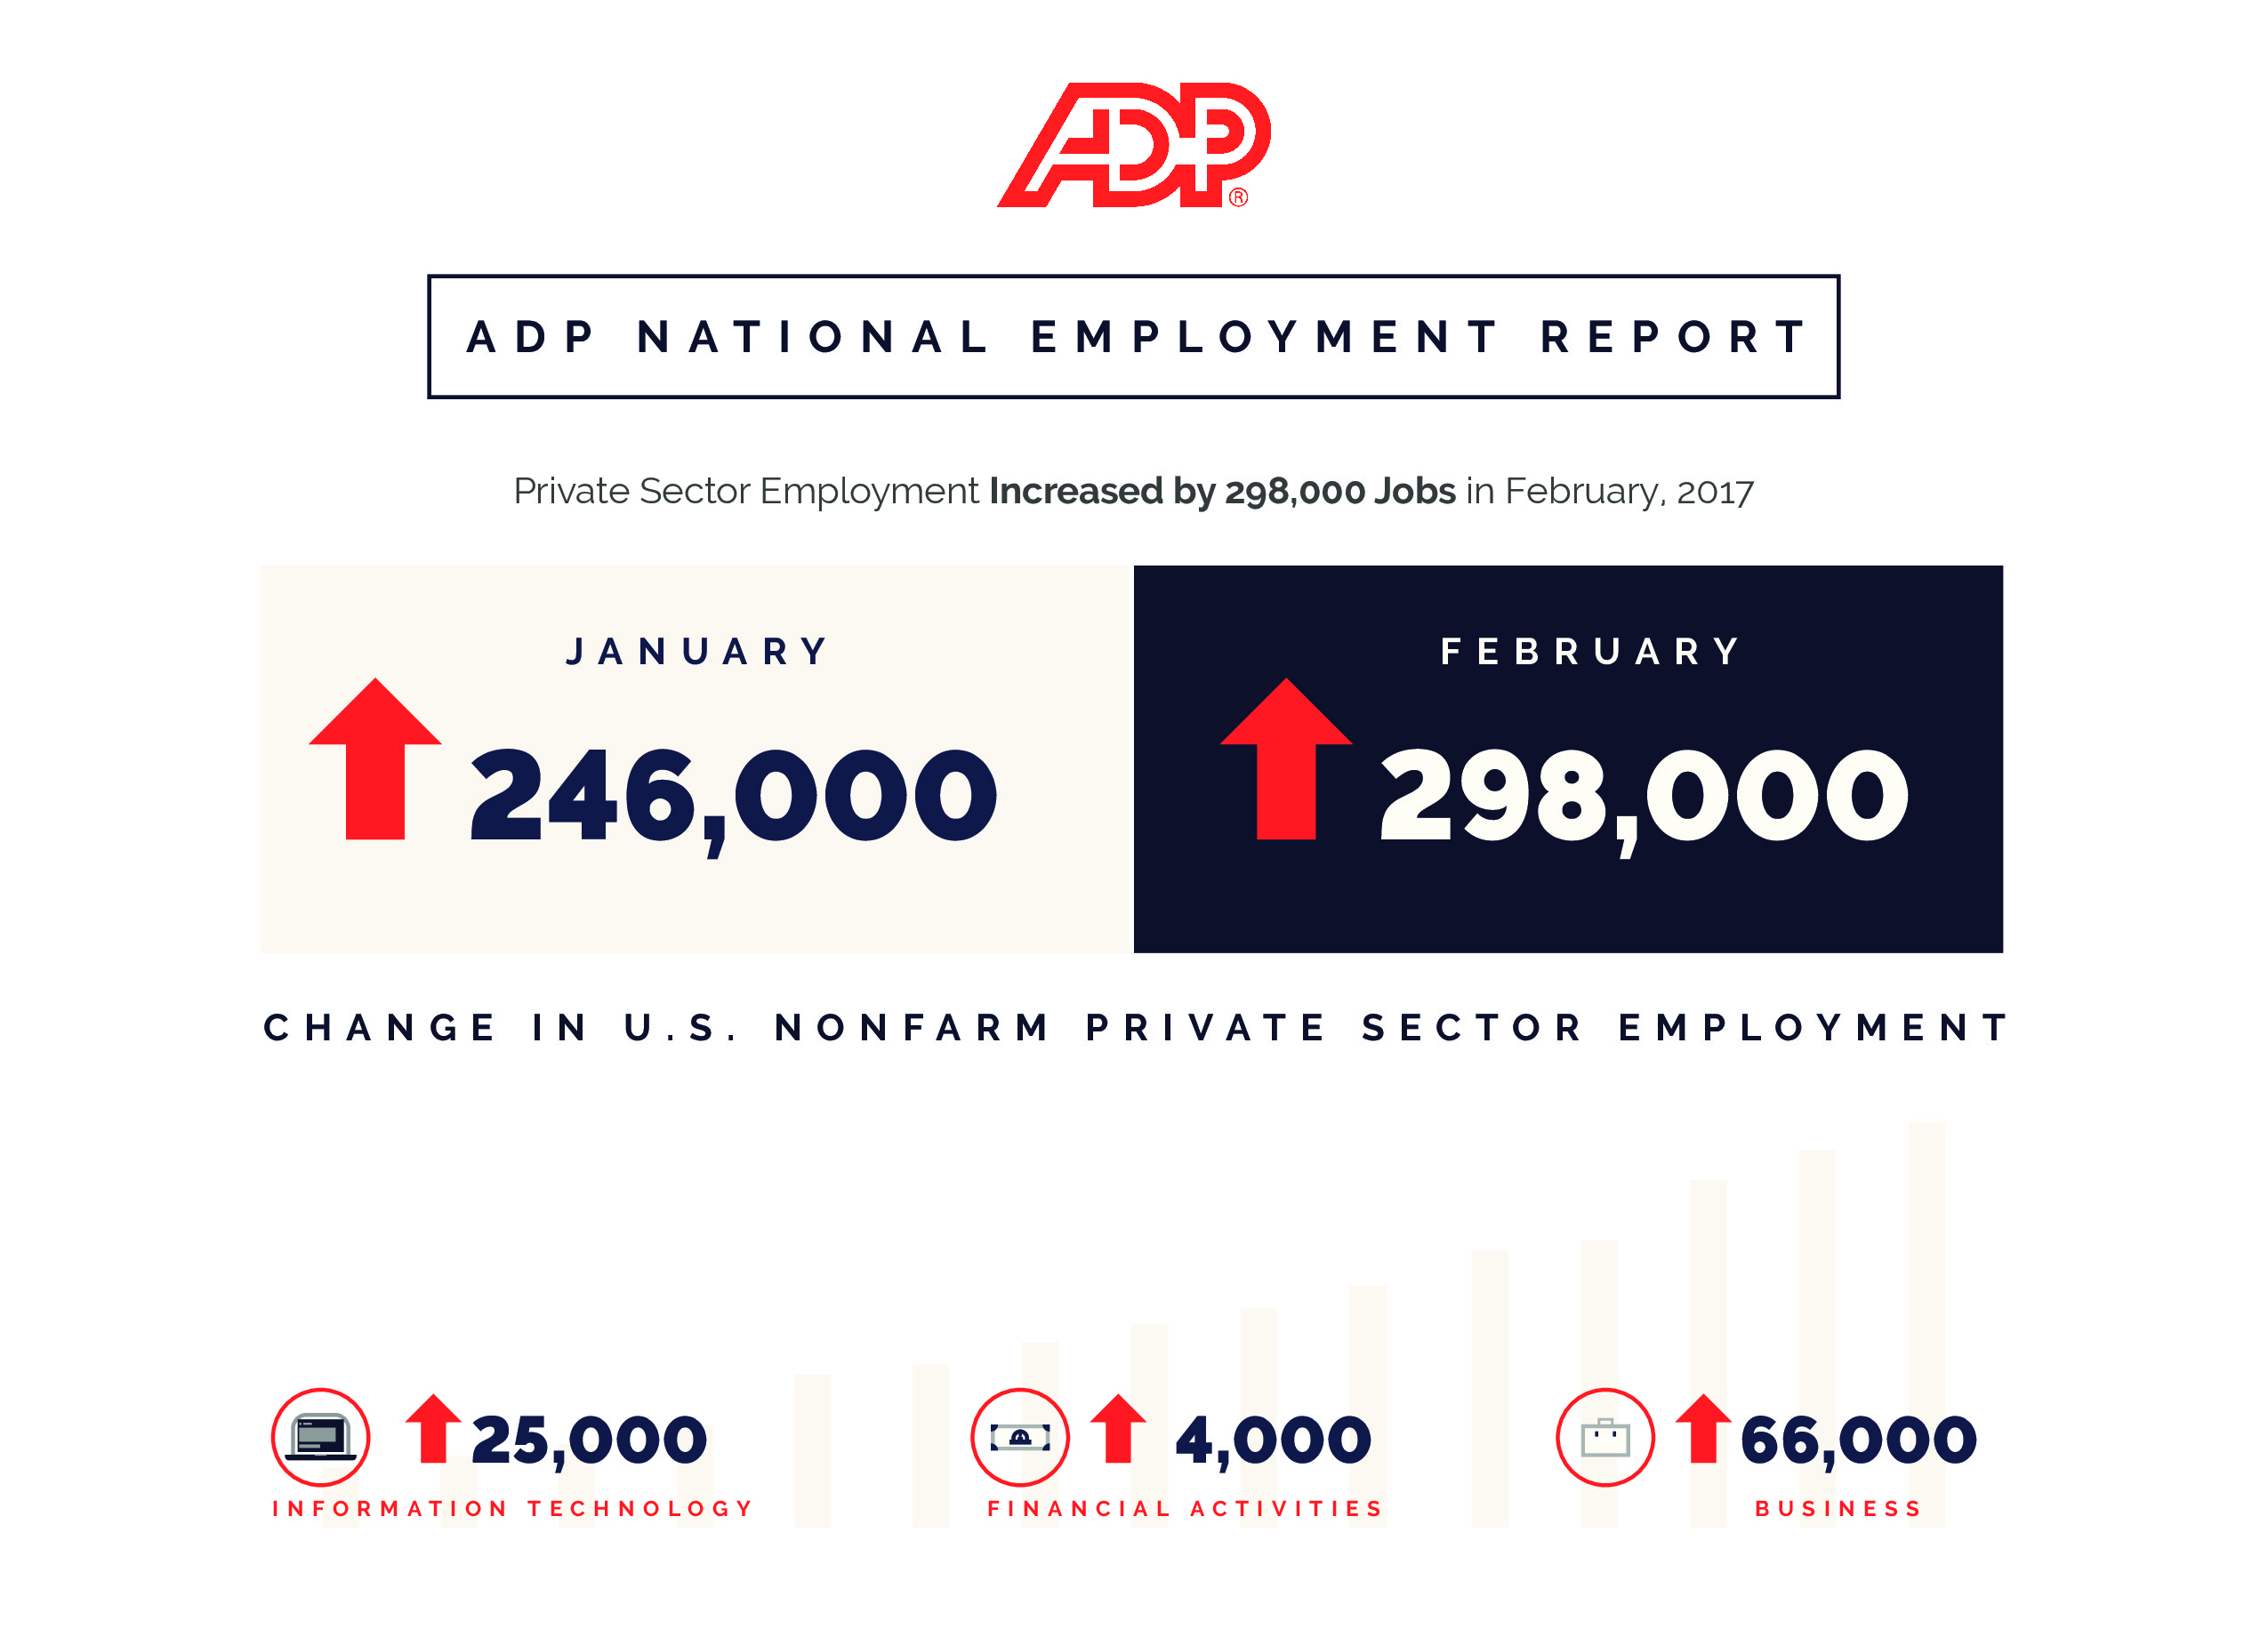 ADP National Employment Data Visual